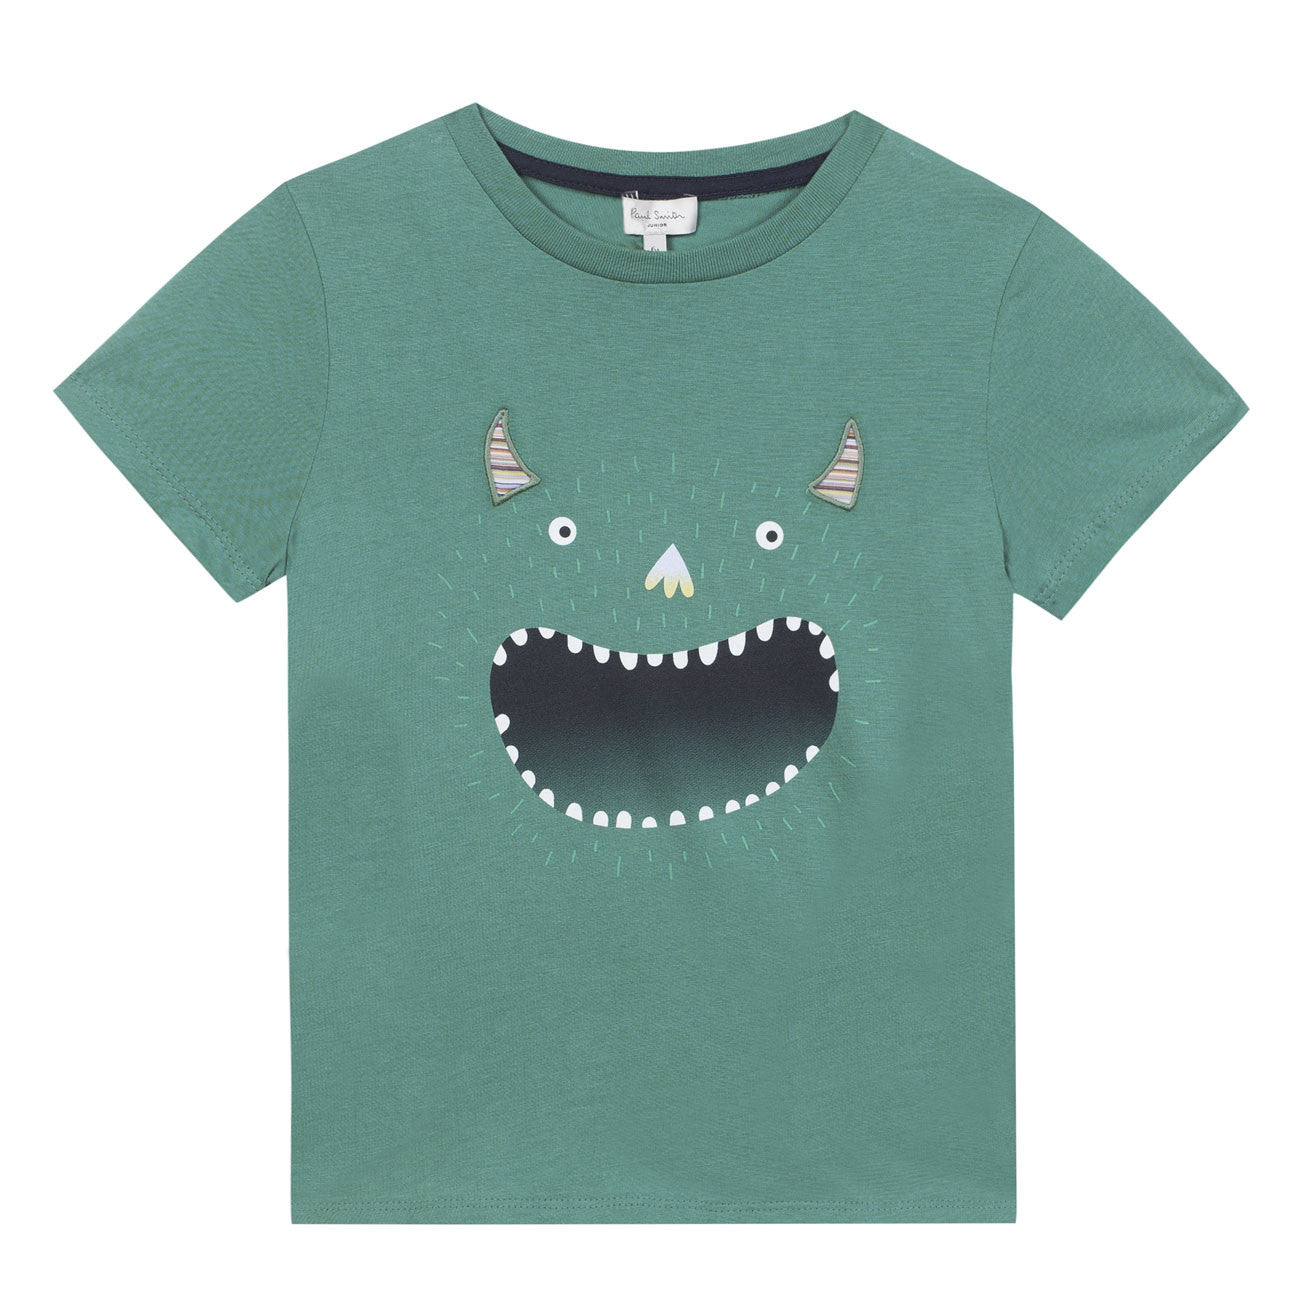 Paul Smith Green Monster Tee - Ladida